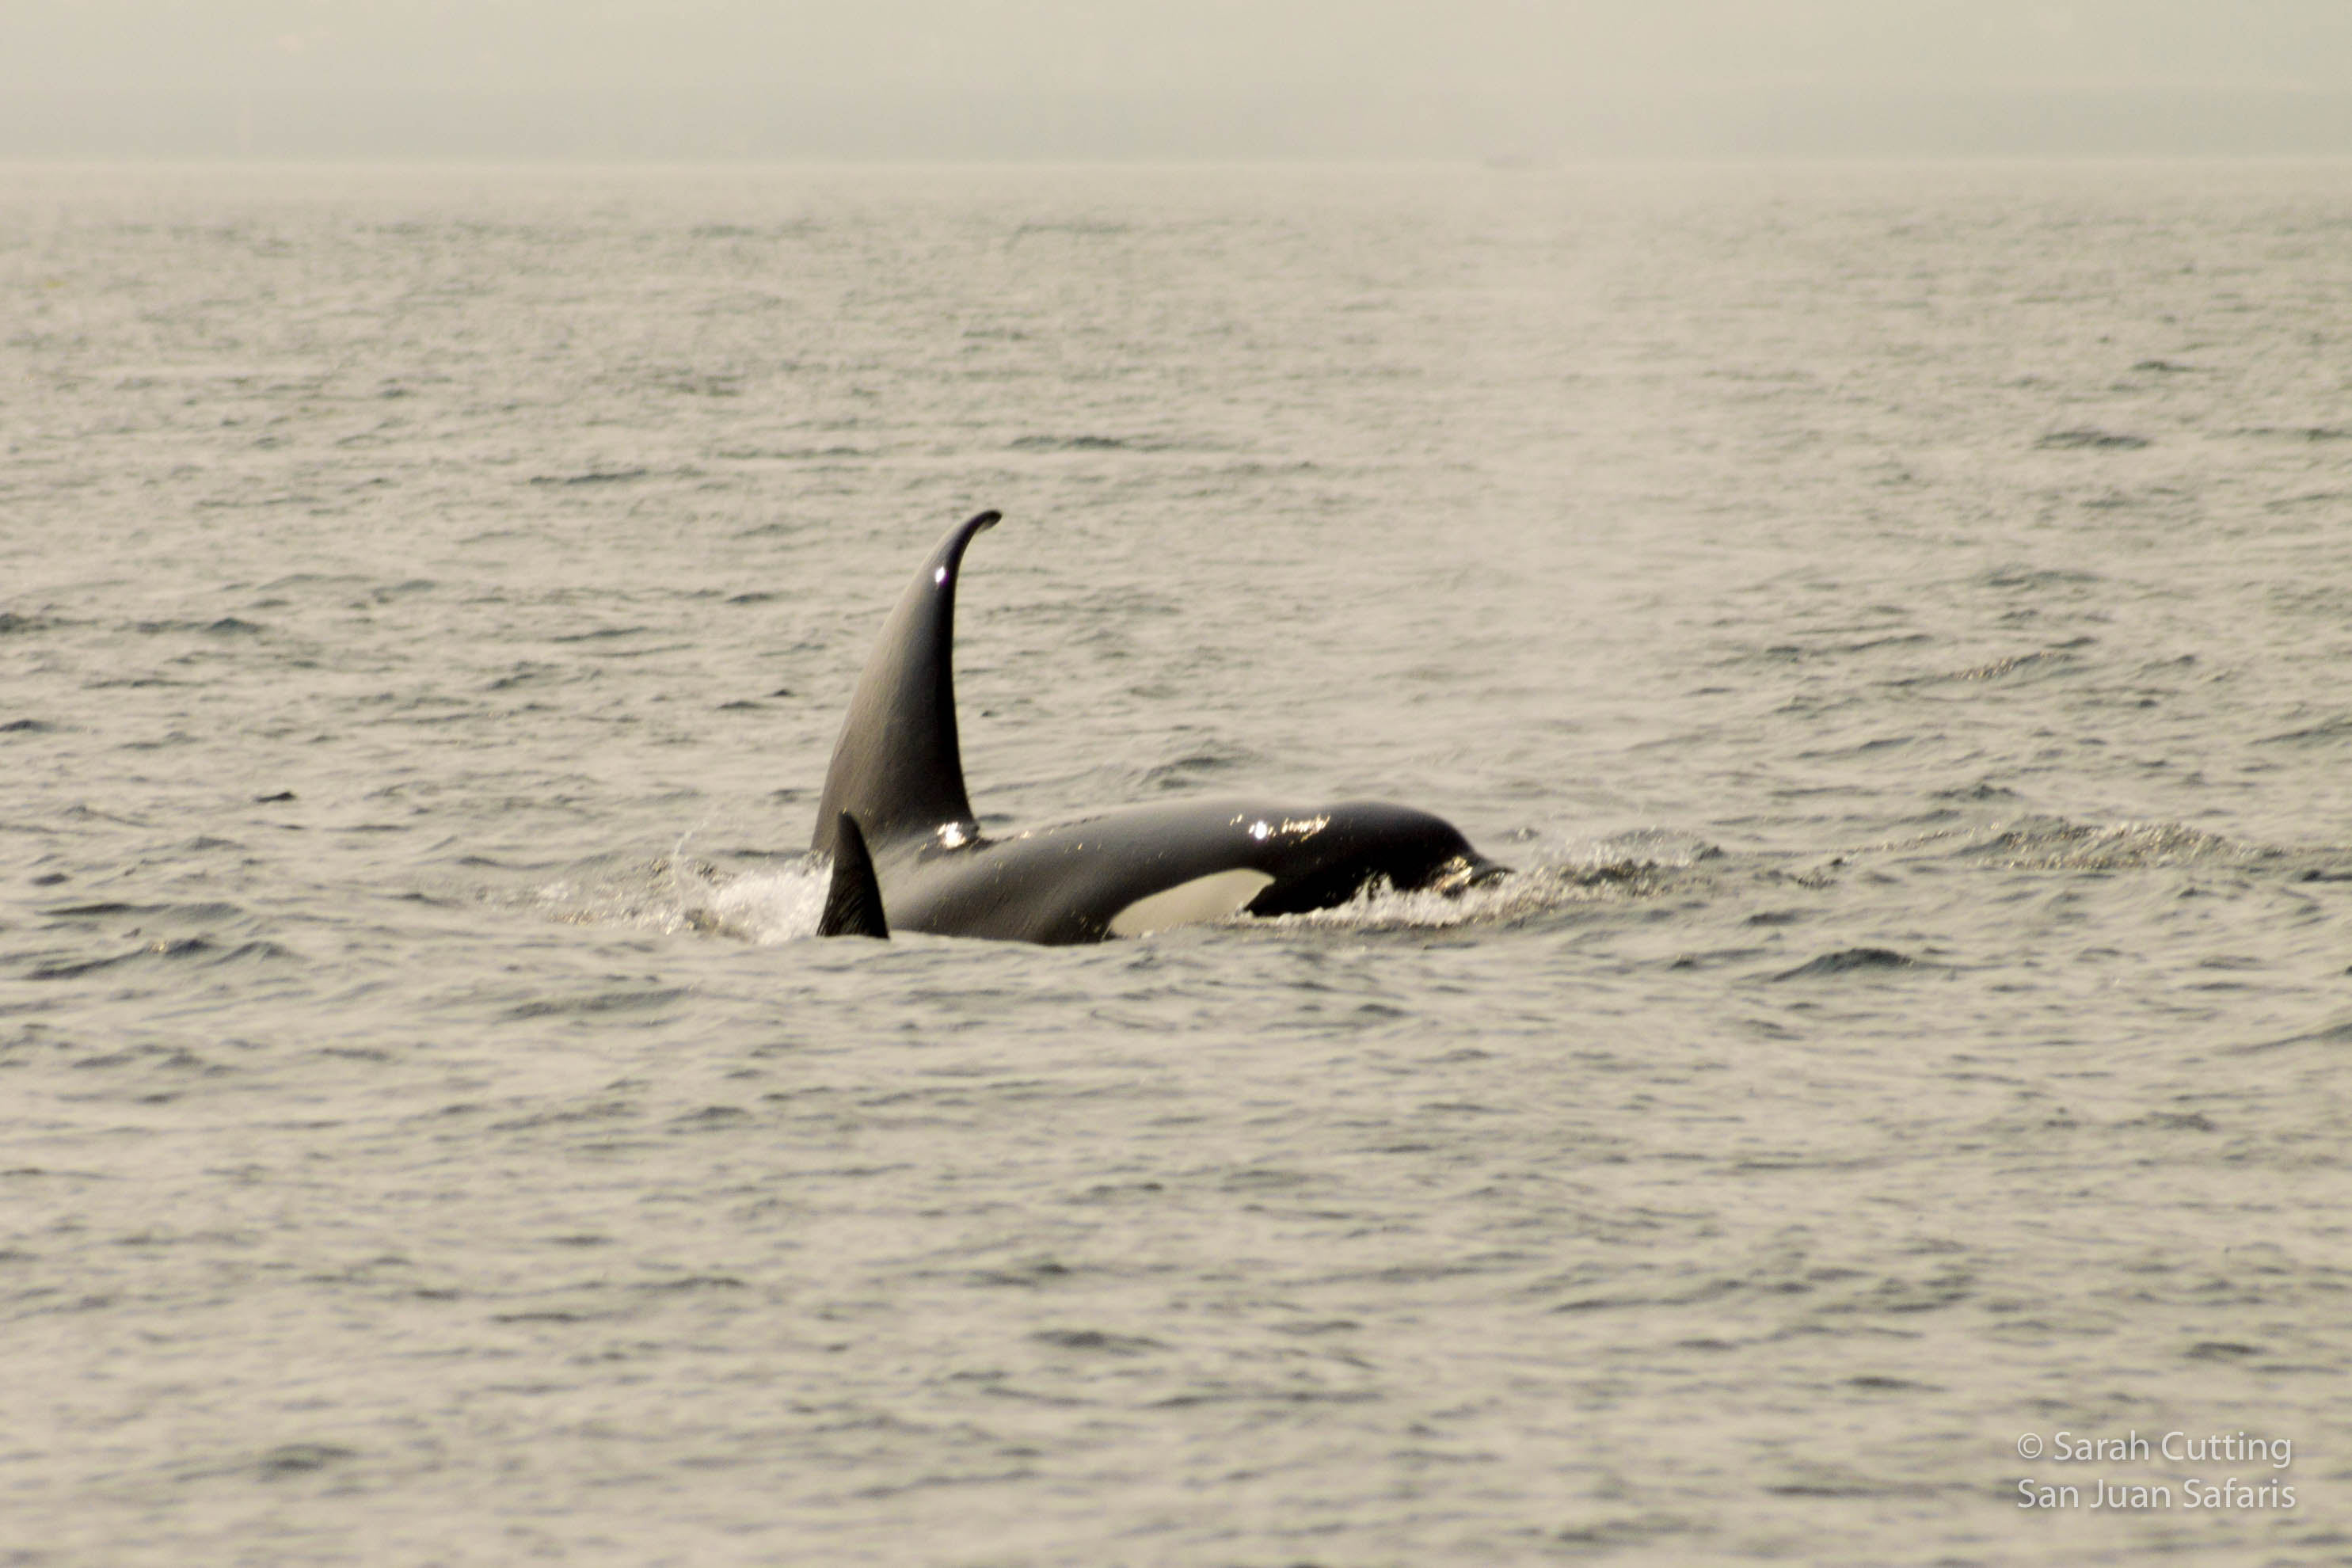 Favorite Family of Transient Orcas Hang Out in the San Juans